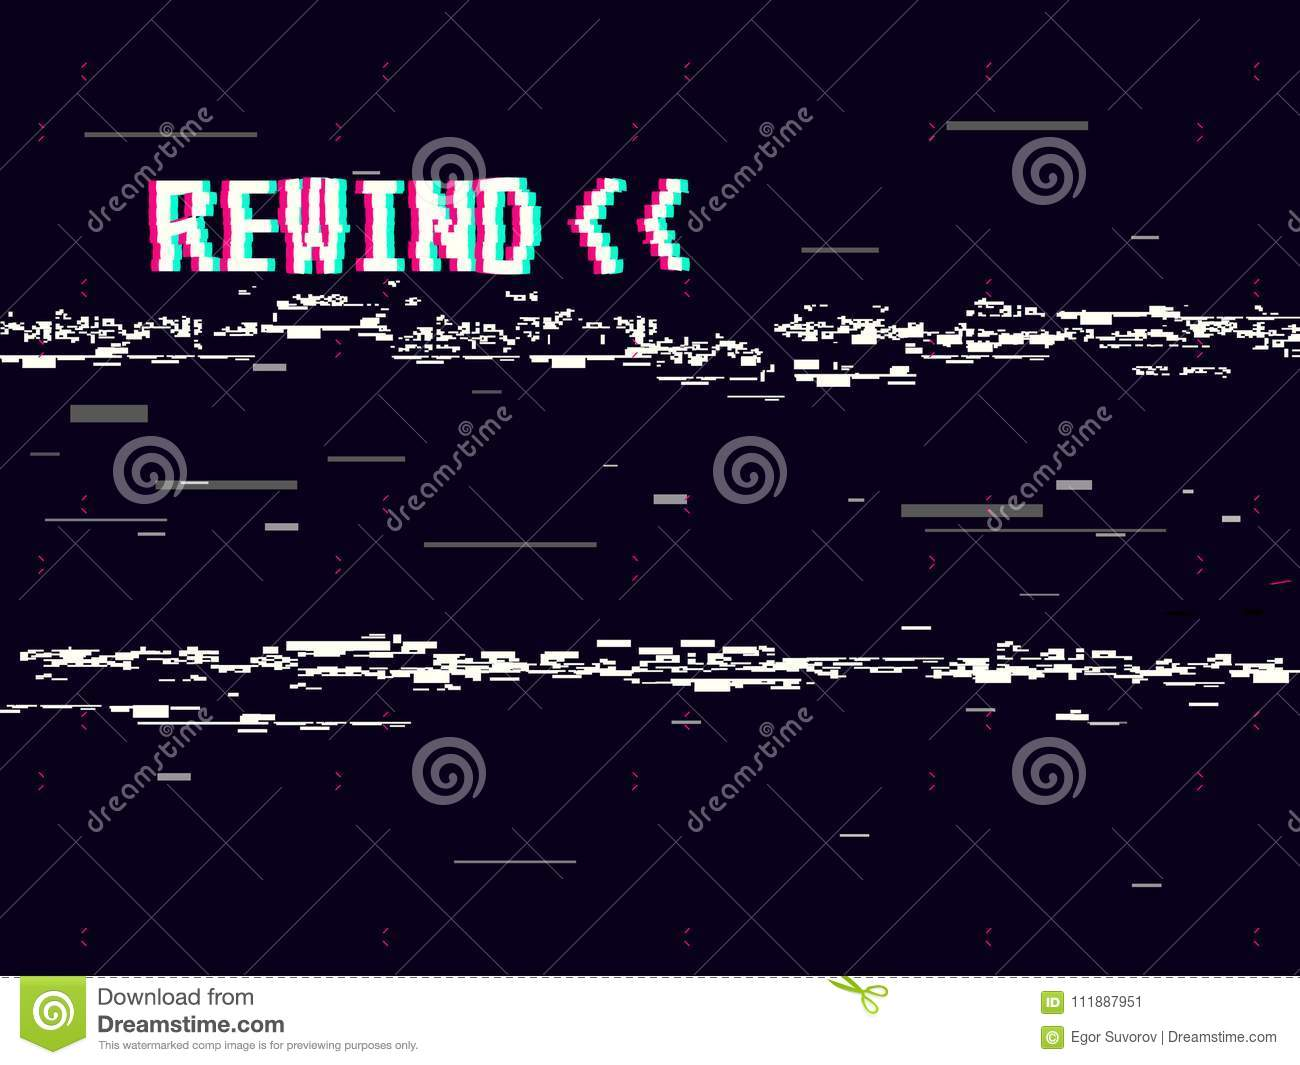 Rewind glitch background. Retro VHS template for design. Glitched lines noise. Pixel art 8 bit style. Vector